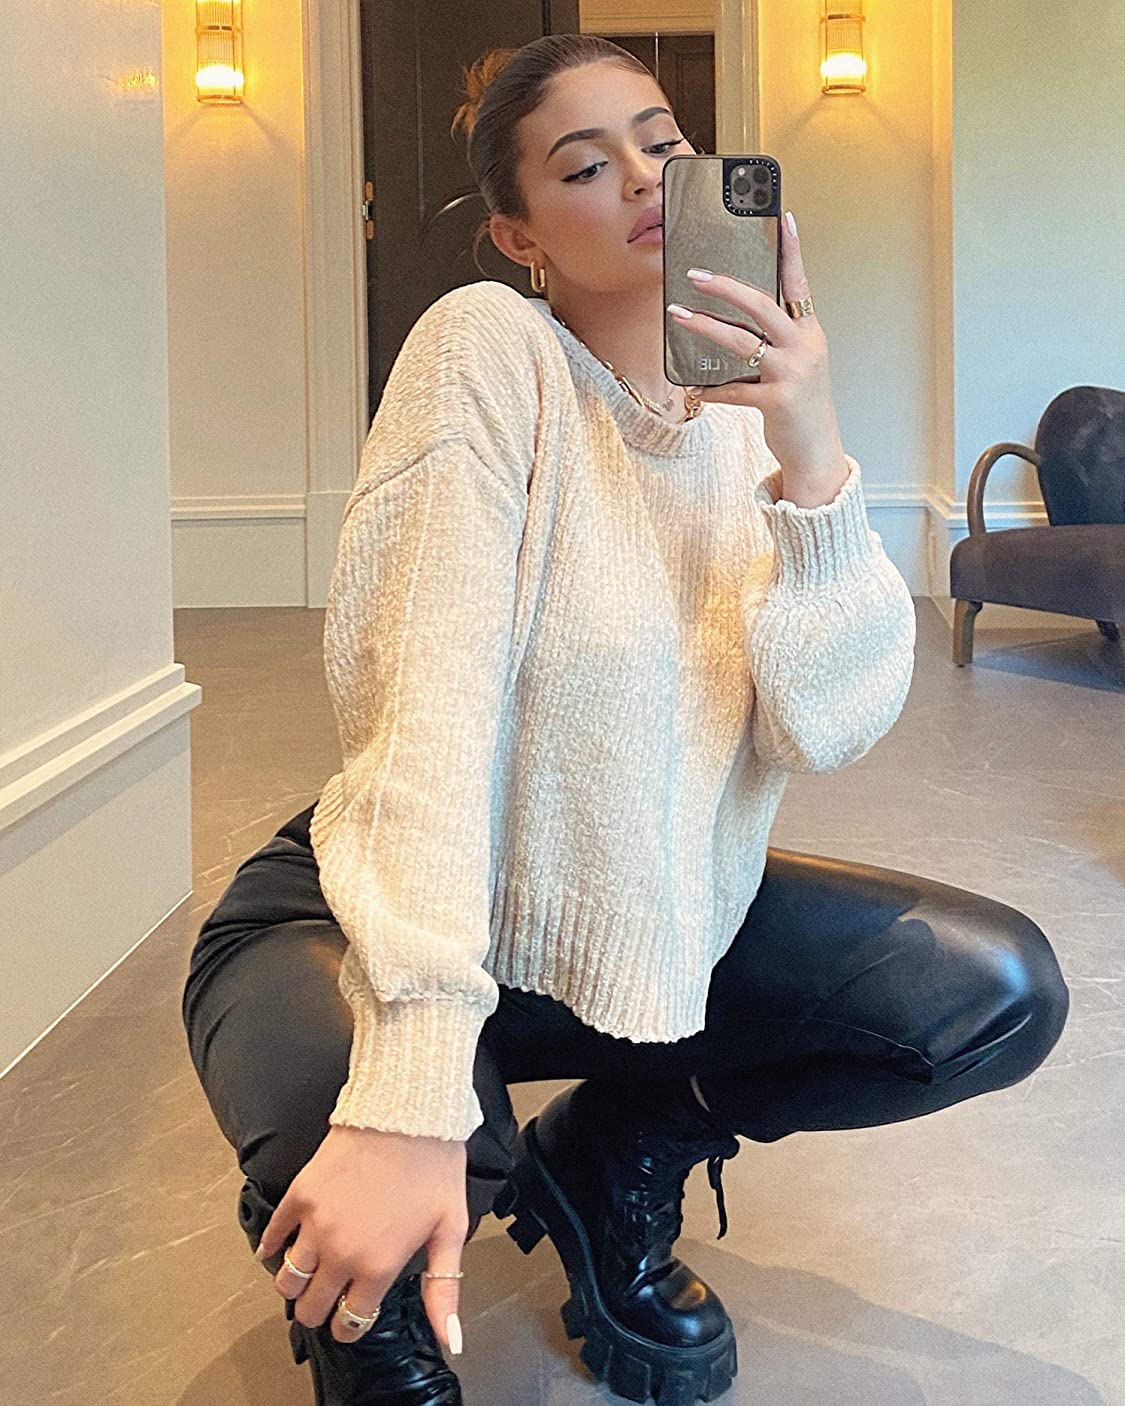 Kendall and Kylie Jenner wears KENDALL + KYLIE Women's Balloon Sleeve Crew Neck Sweater - Amazon Exclusive